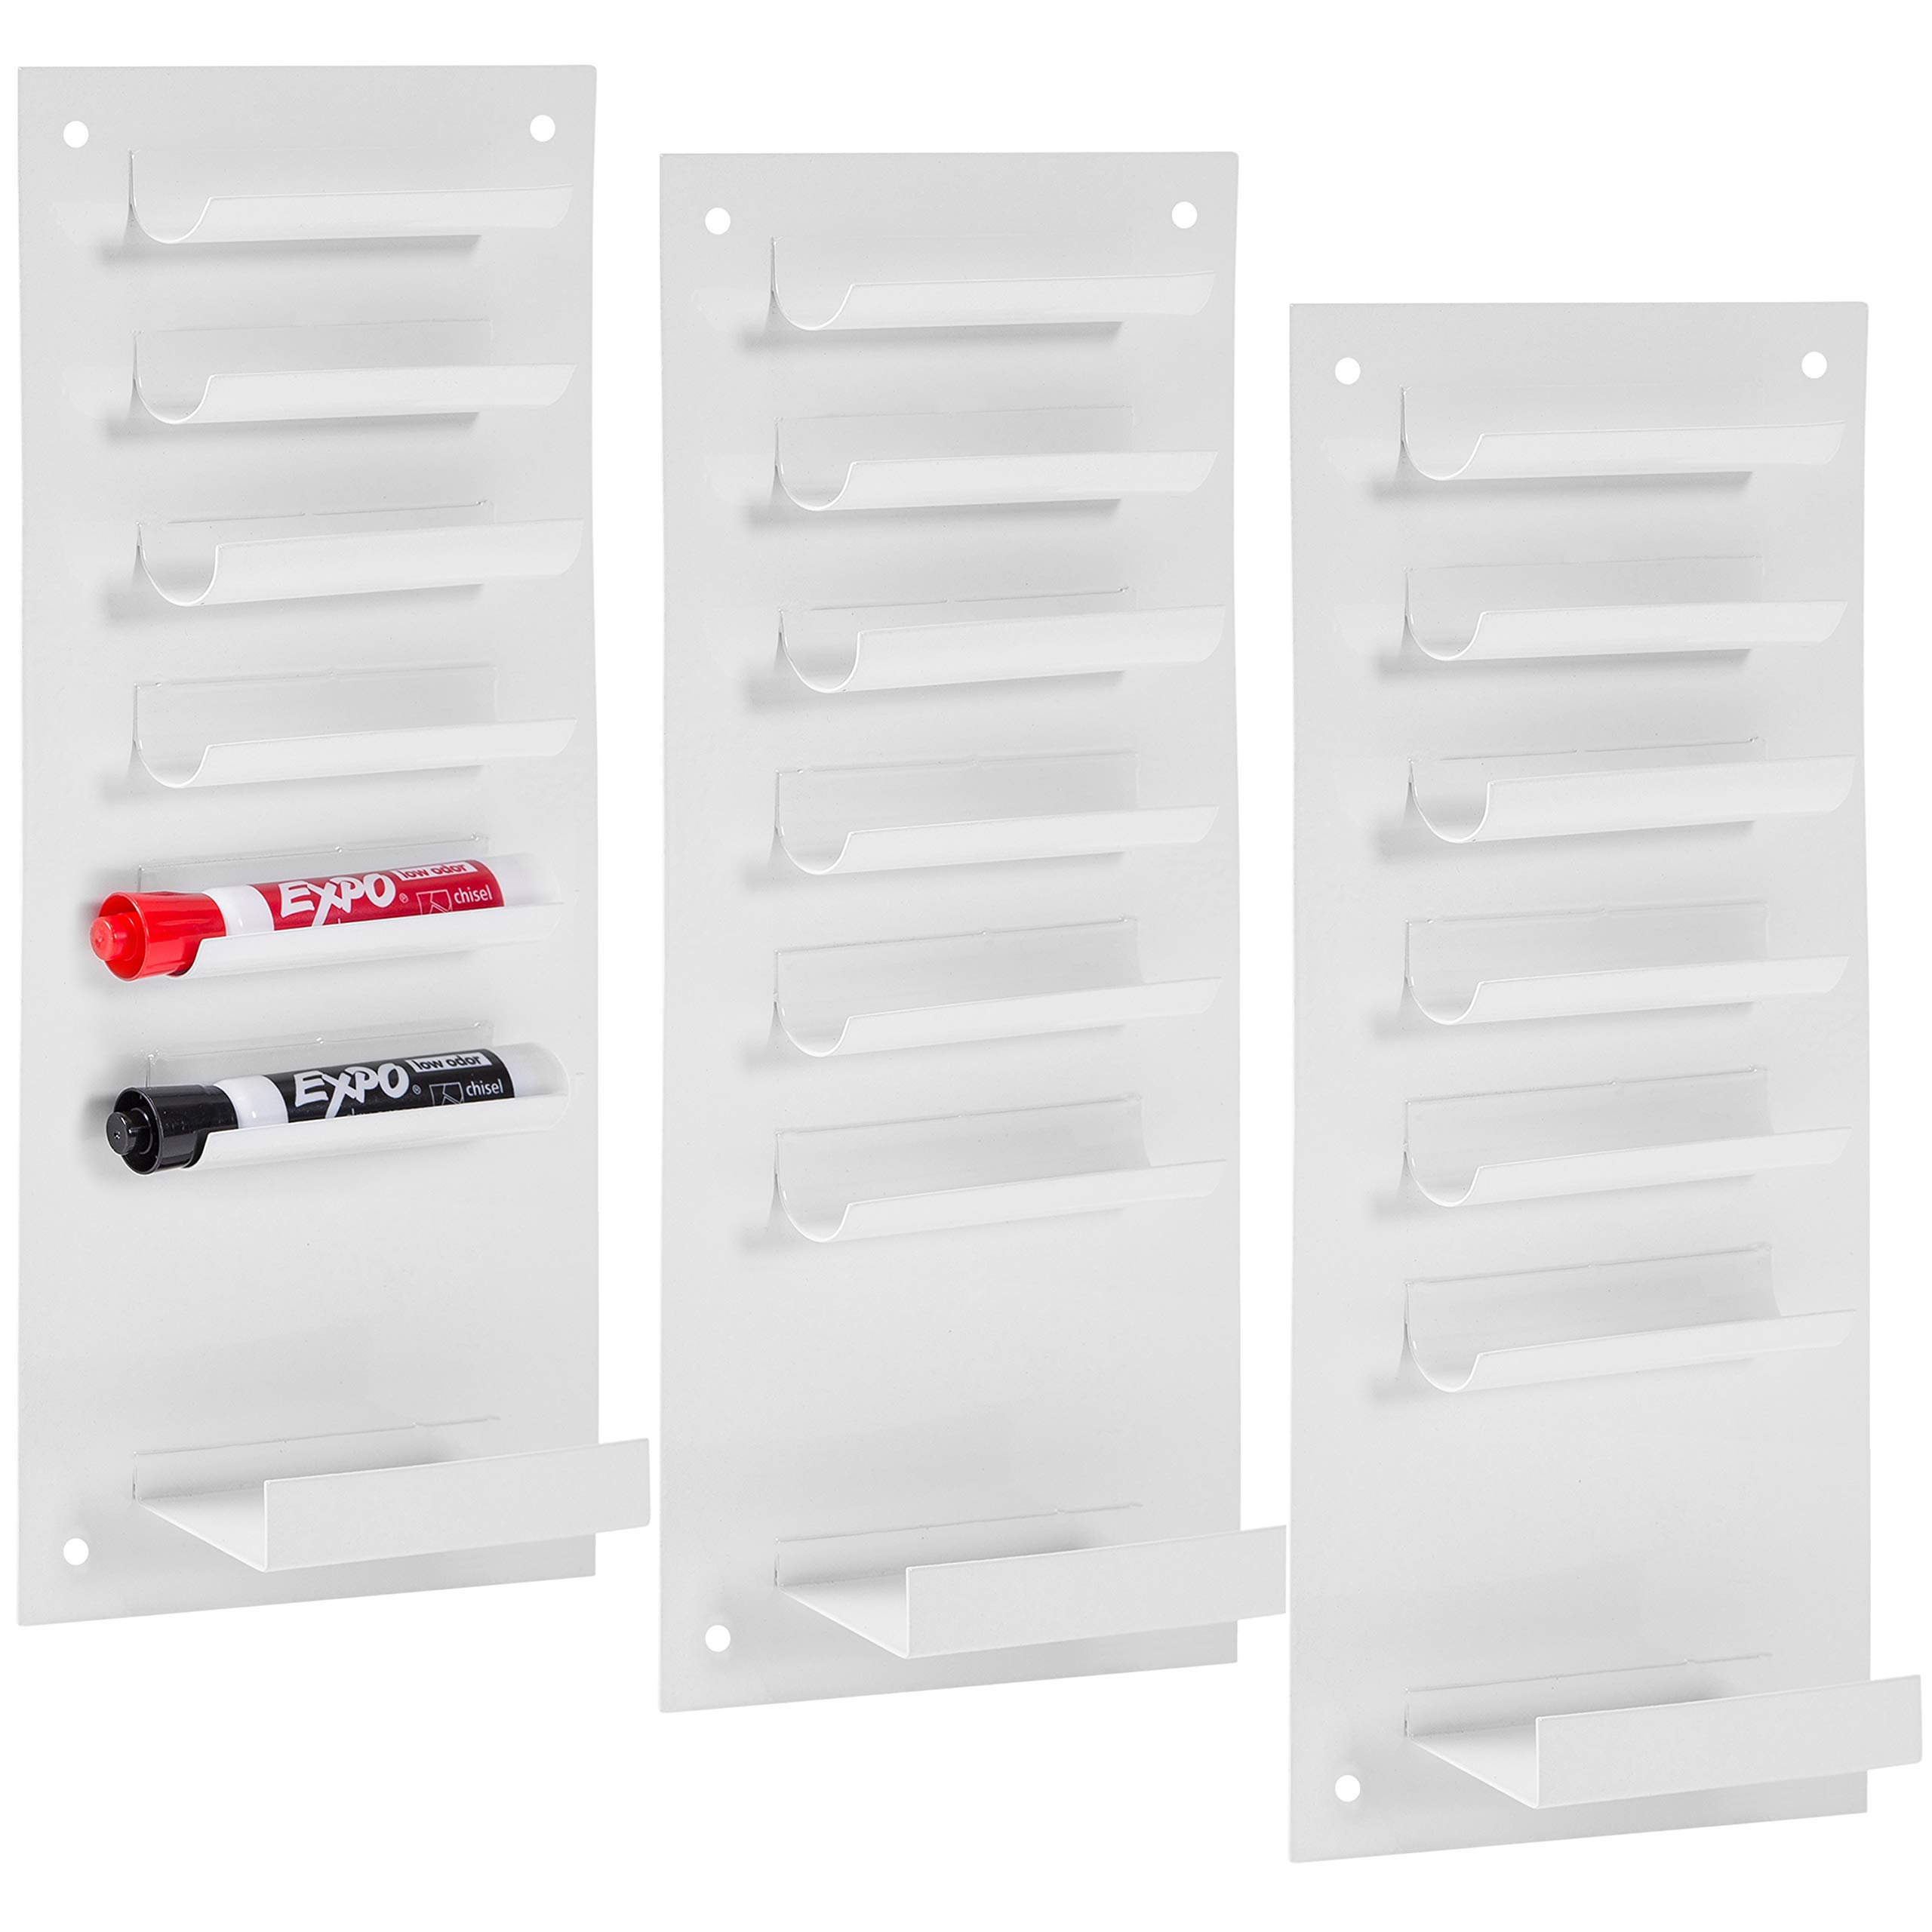 MyGift 6-Slot Wall-Mounted Metal Dry Erase Marker and Eraser Holder, Set of 3